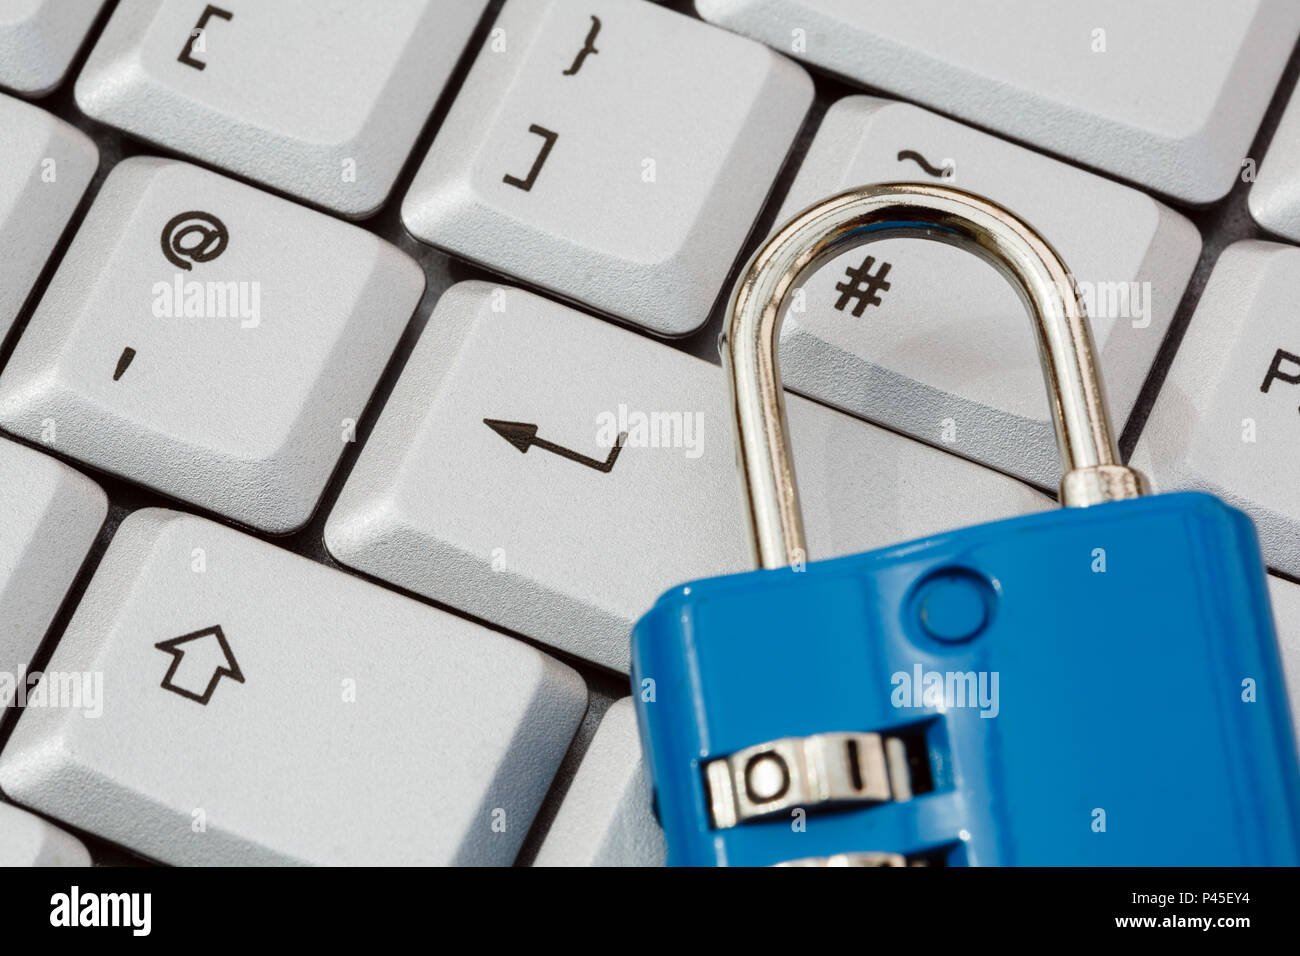 A keyboard with enter key and a padlock to illustrate online cyber security and data protection GDPR concept. England UK Britain EU - Stock Image